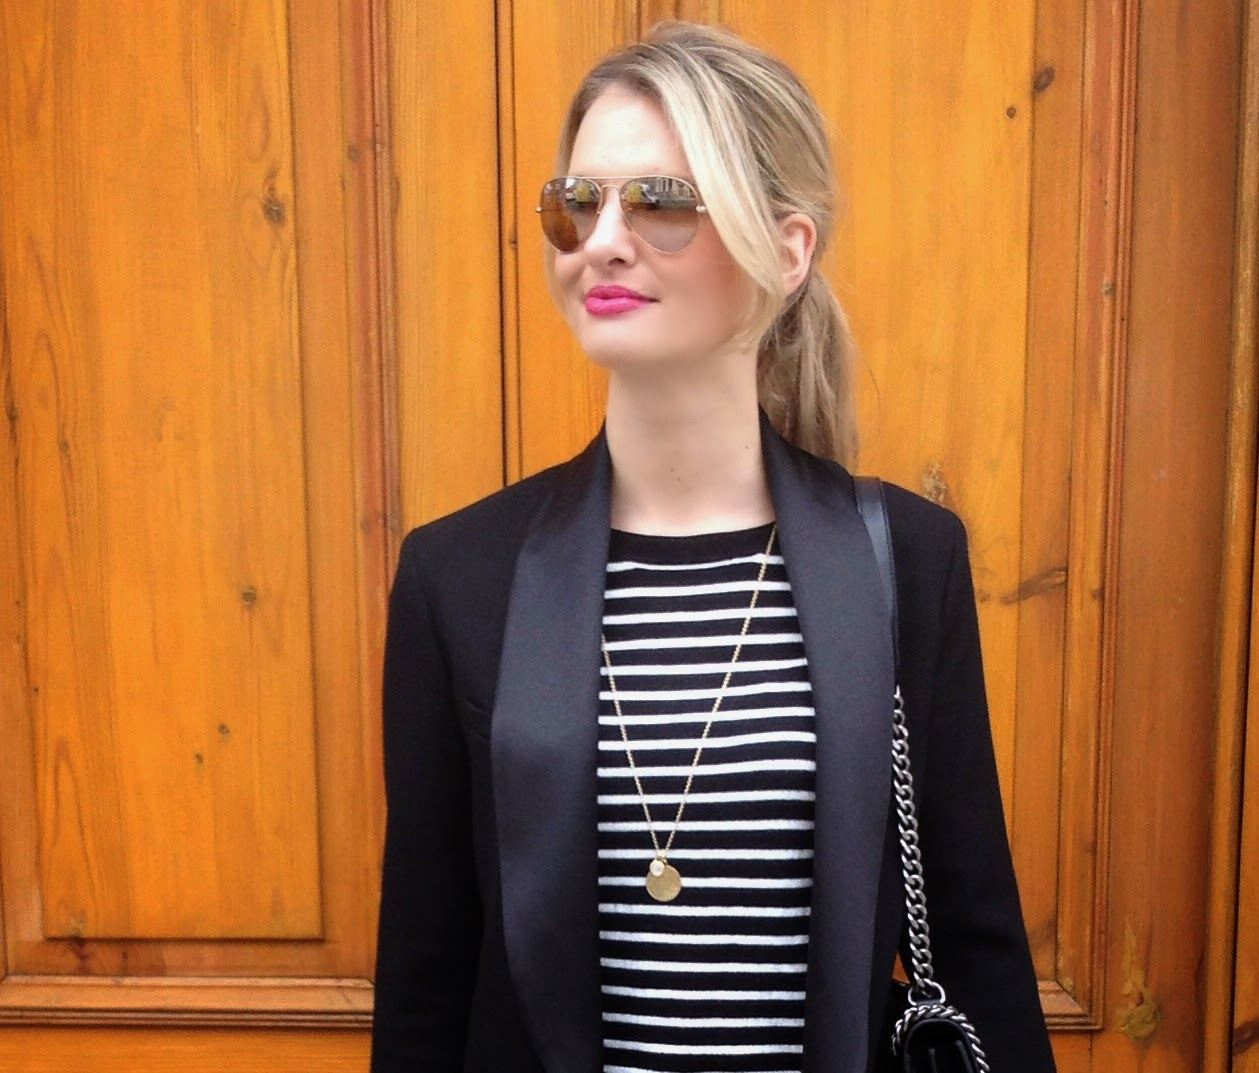 striped top, breton stripe top, monica vinader, monica vinader pendant, ray ban, aviator sunglasses, blazer, tux blazer, isabel marant blazer, isabel marant pour hm, zara boy bag, zara croco bag, pink lipstick, chrissabella, fashion blogger, german fashion blogger, deutscher fashion blogger, london, london fahsion blogger